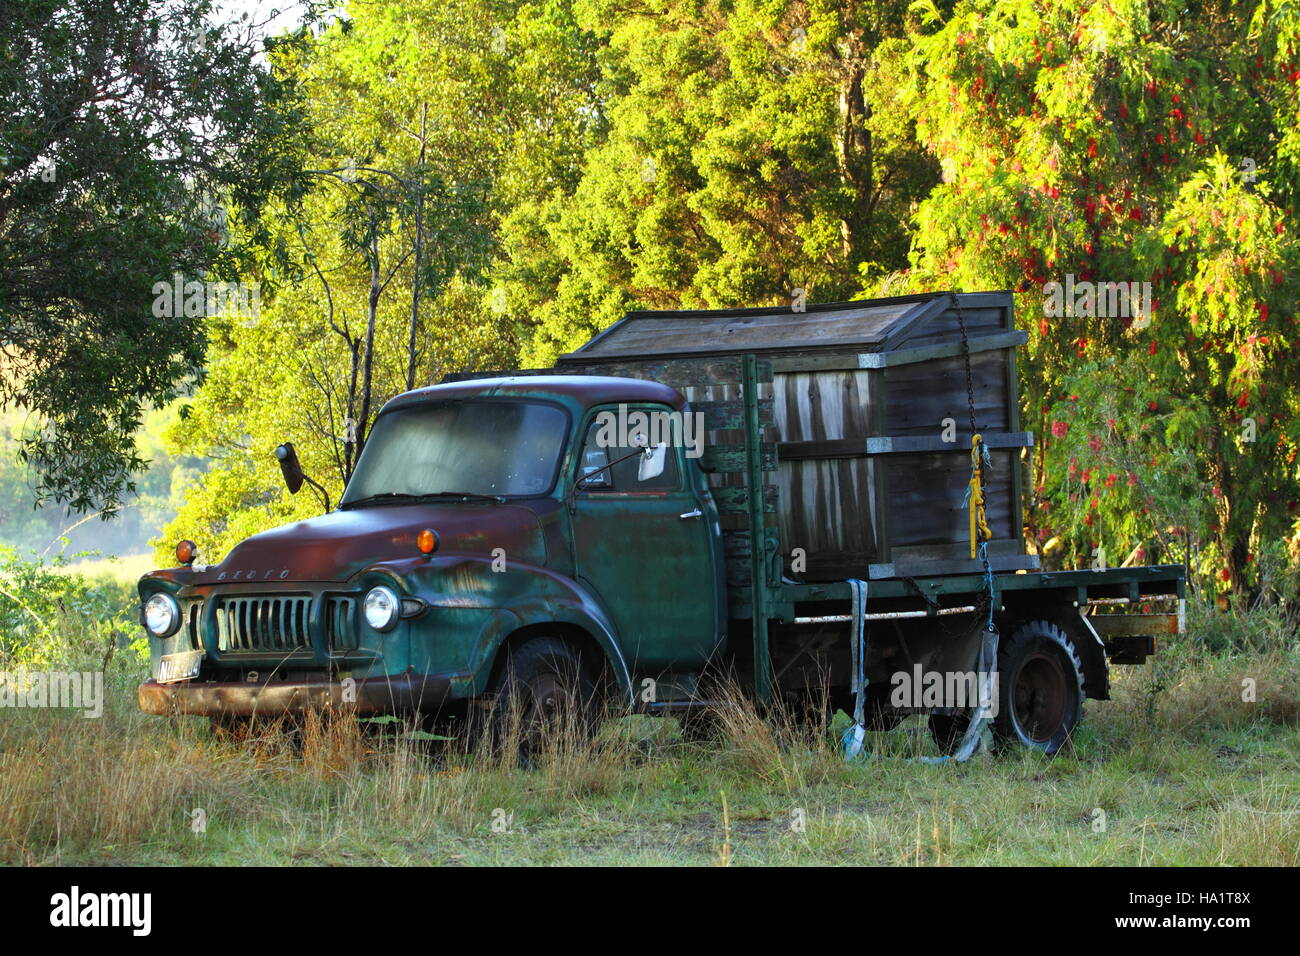 A rusty old green Bedford truck at rest in a field, in front of a thicket of trees. - Stock Image